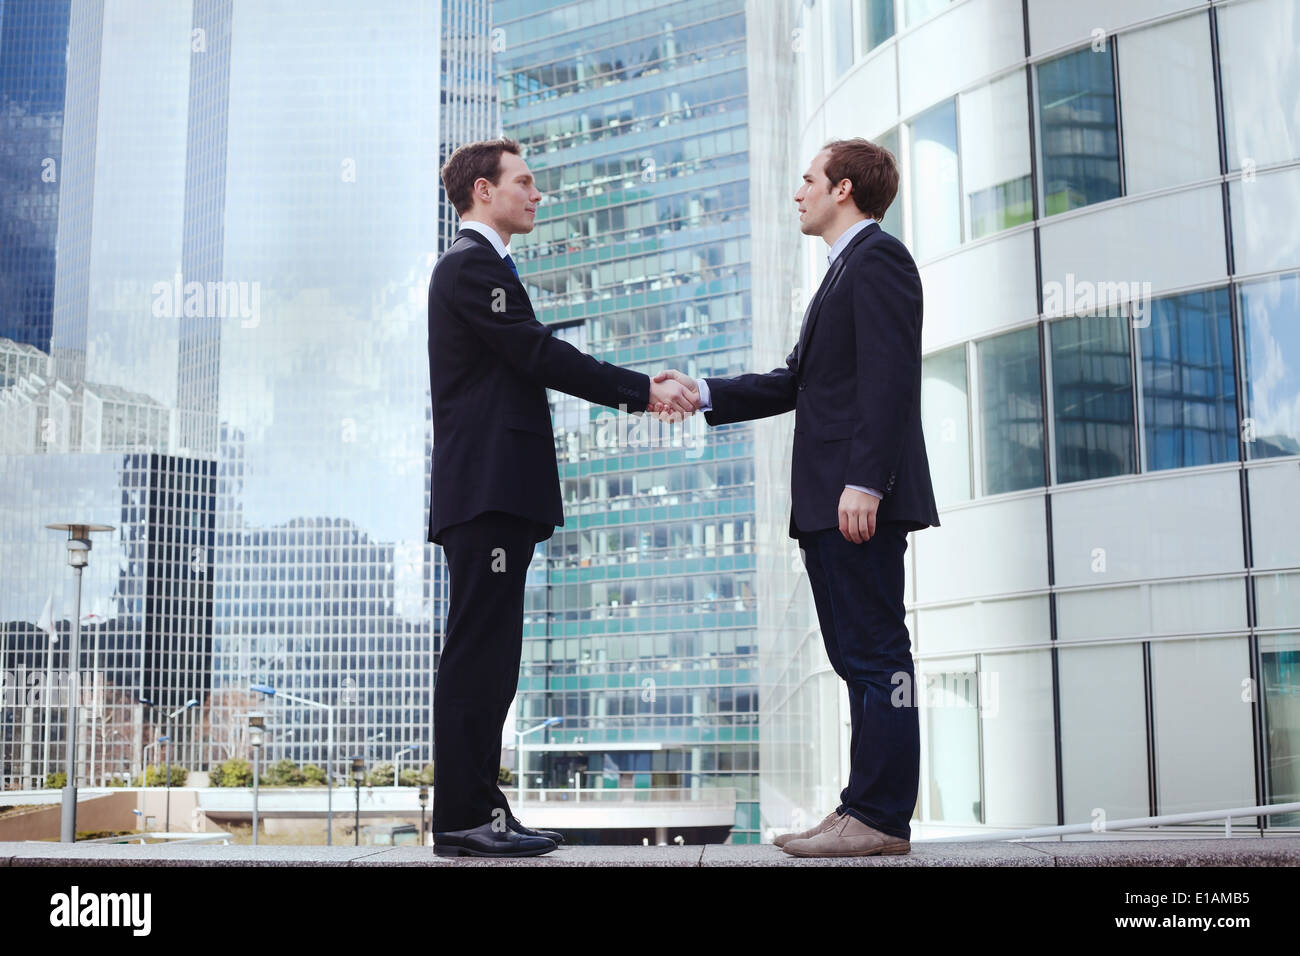 partnership, two businessman on office buildings background - Stock Image